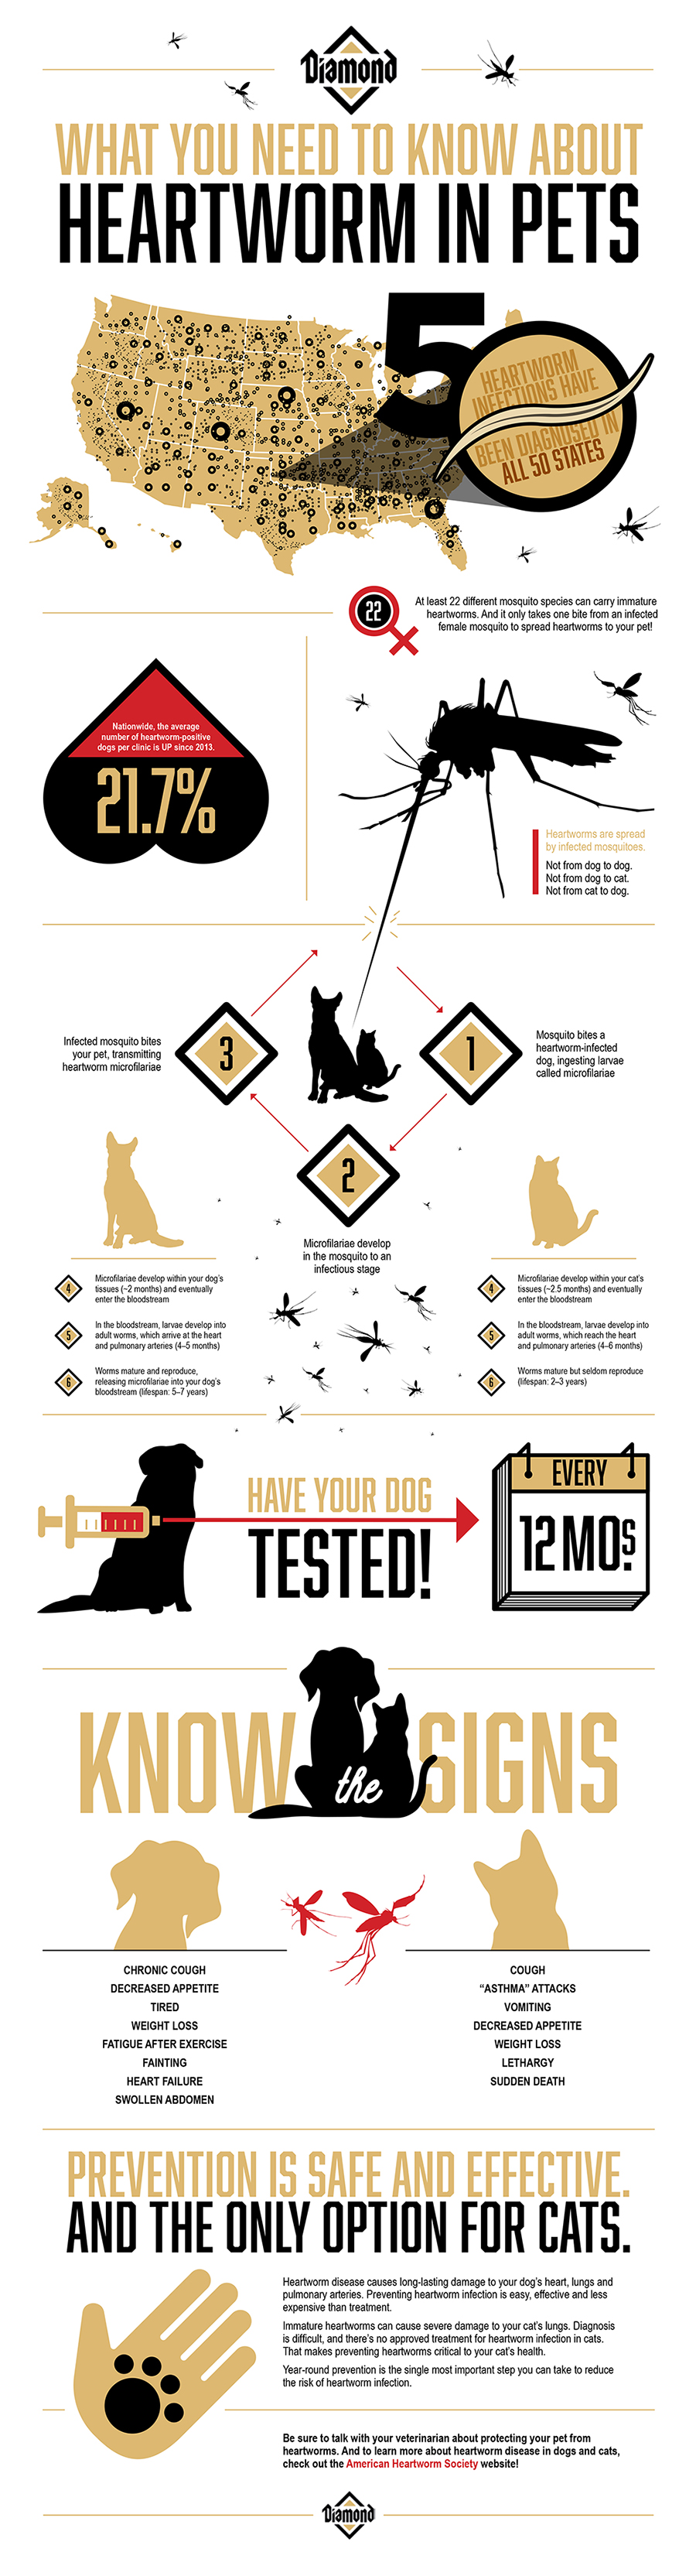 What You Need to Know About Heartworm in Pets Infographic | Diamond Pet Foods